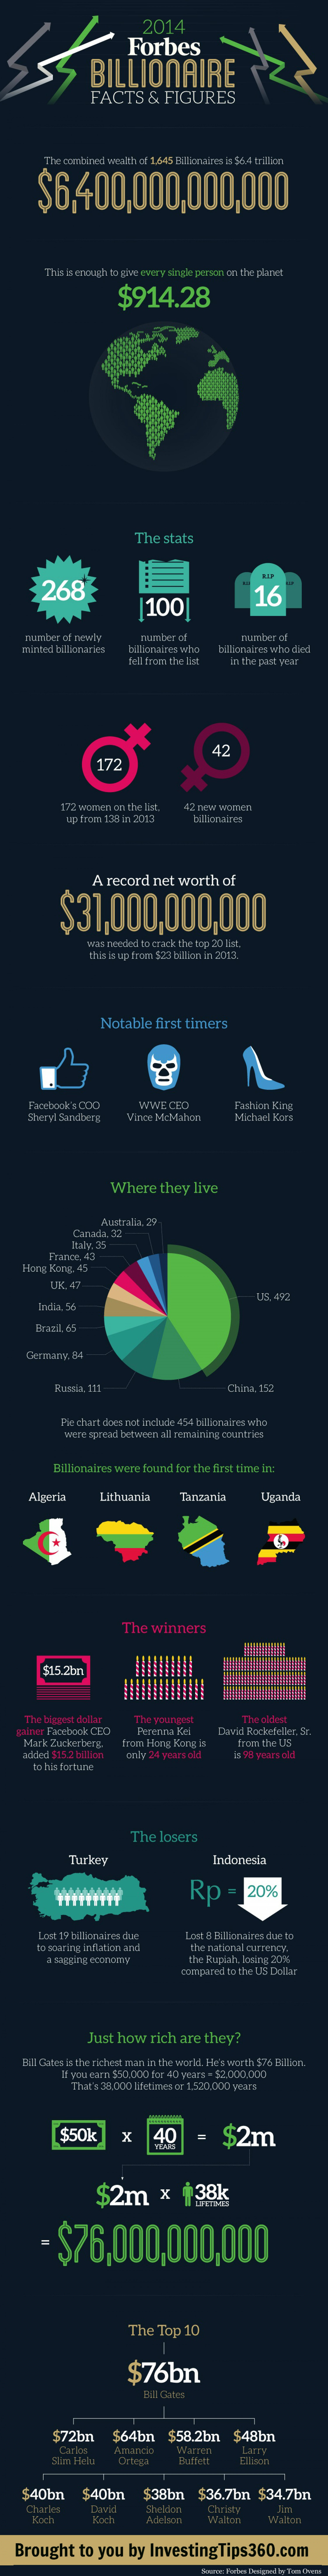 2014 Forbes Billionaires Facts & Figures infographic